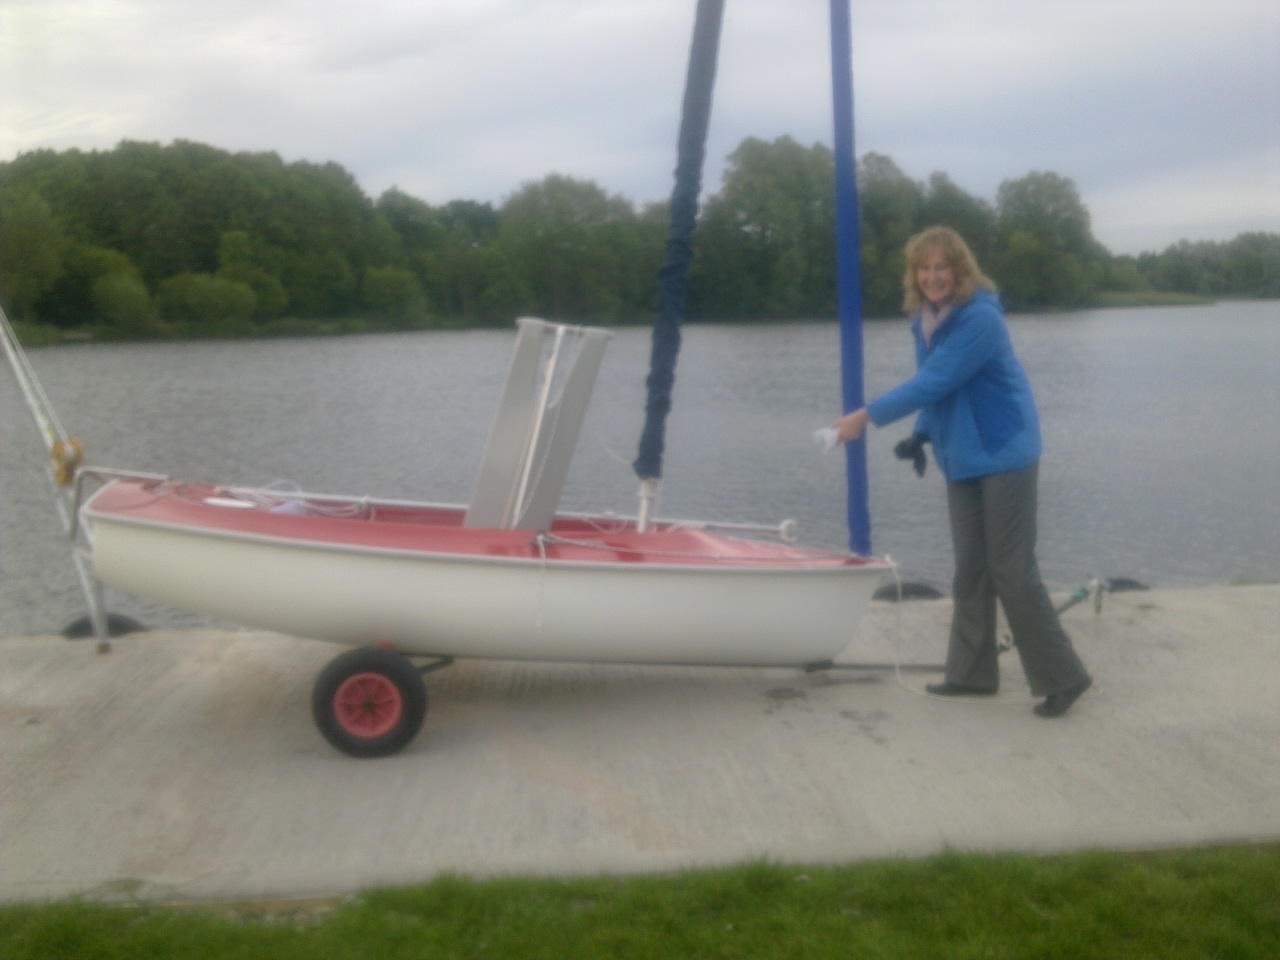 Karen Blundell getting ready to name her dinghy